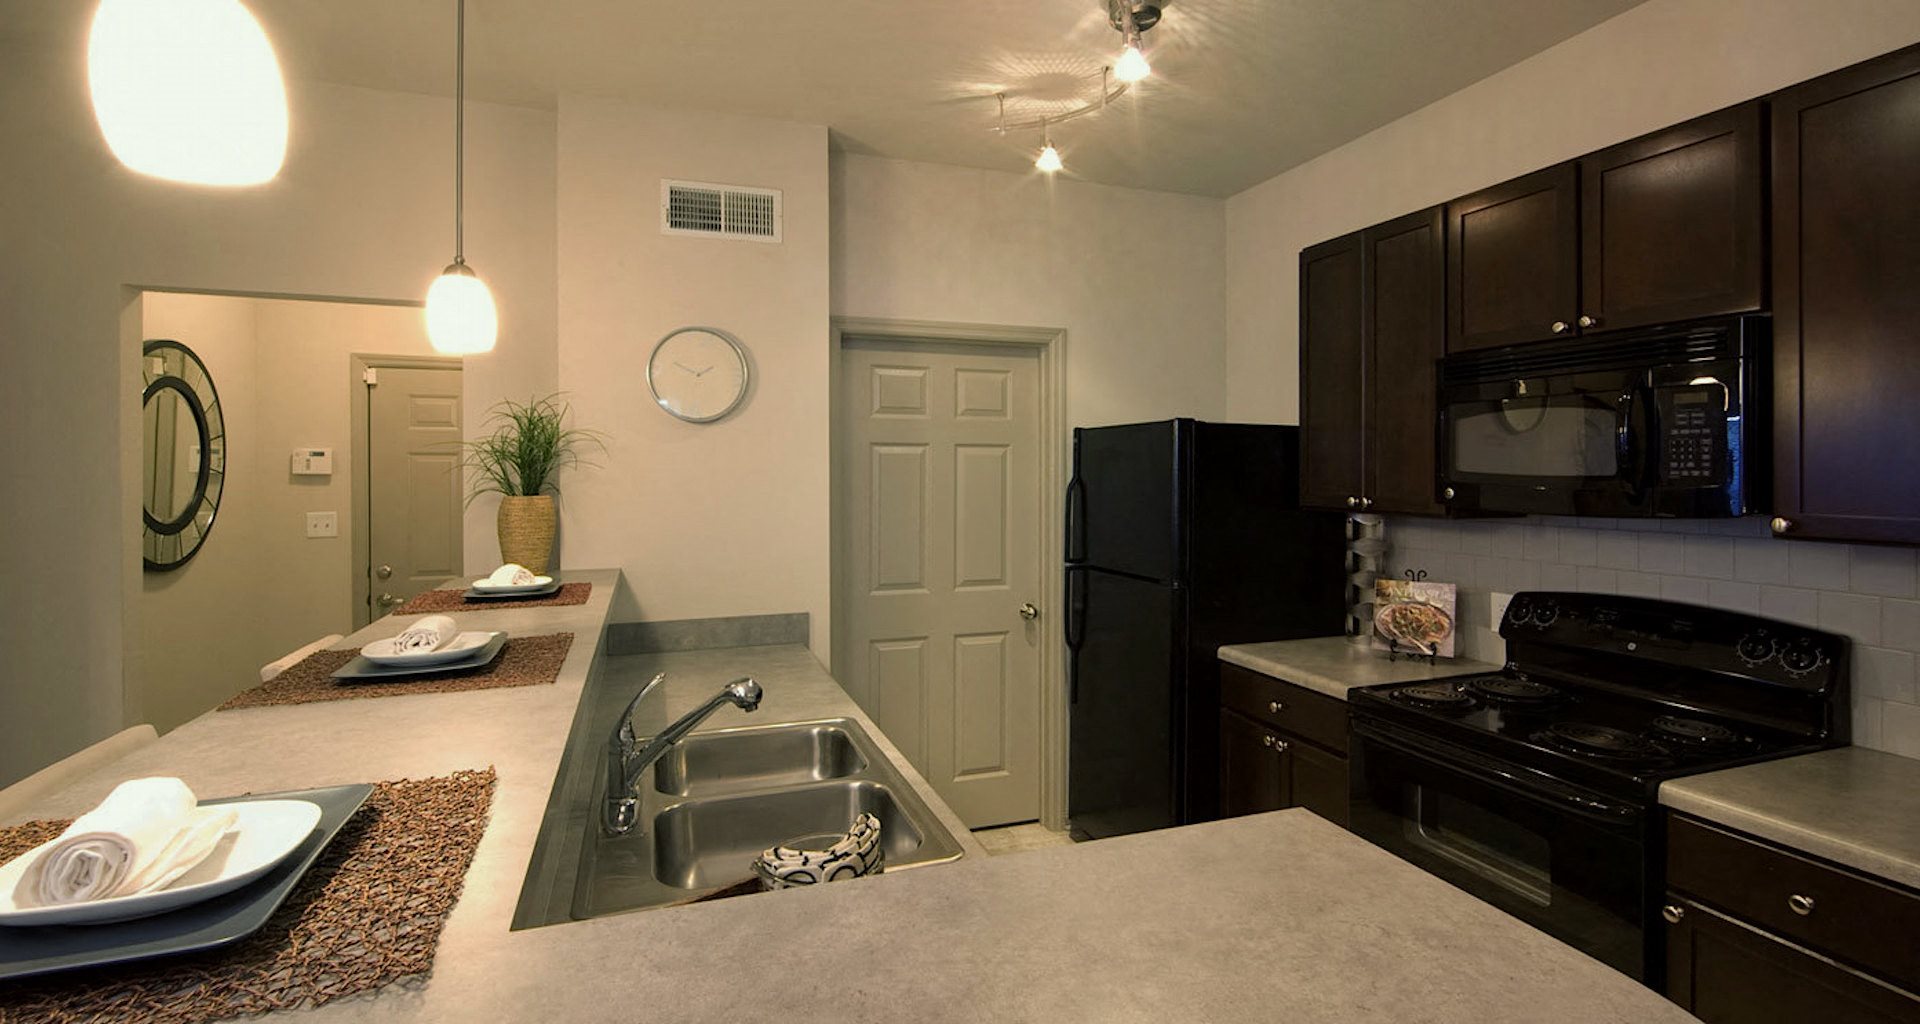 Bridgewater apartments in huntsville, al 35806 kitchen